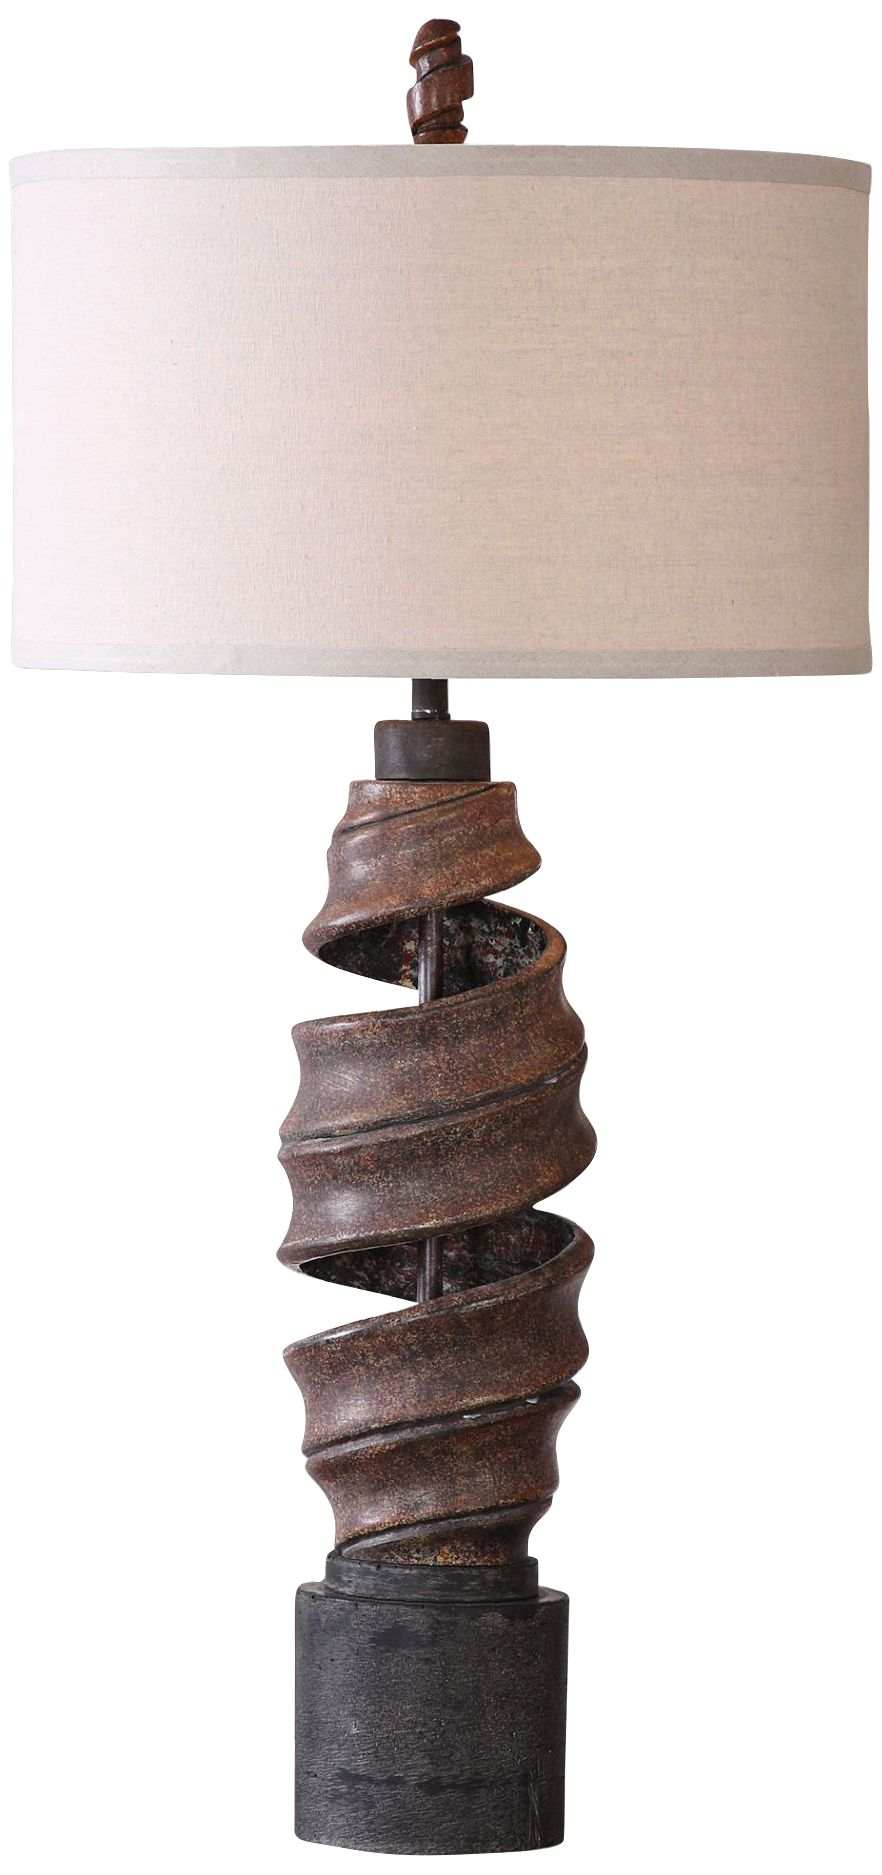 uttermost abrose aged rust natural twist concrete table lamp - Uttermost Lamps